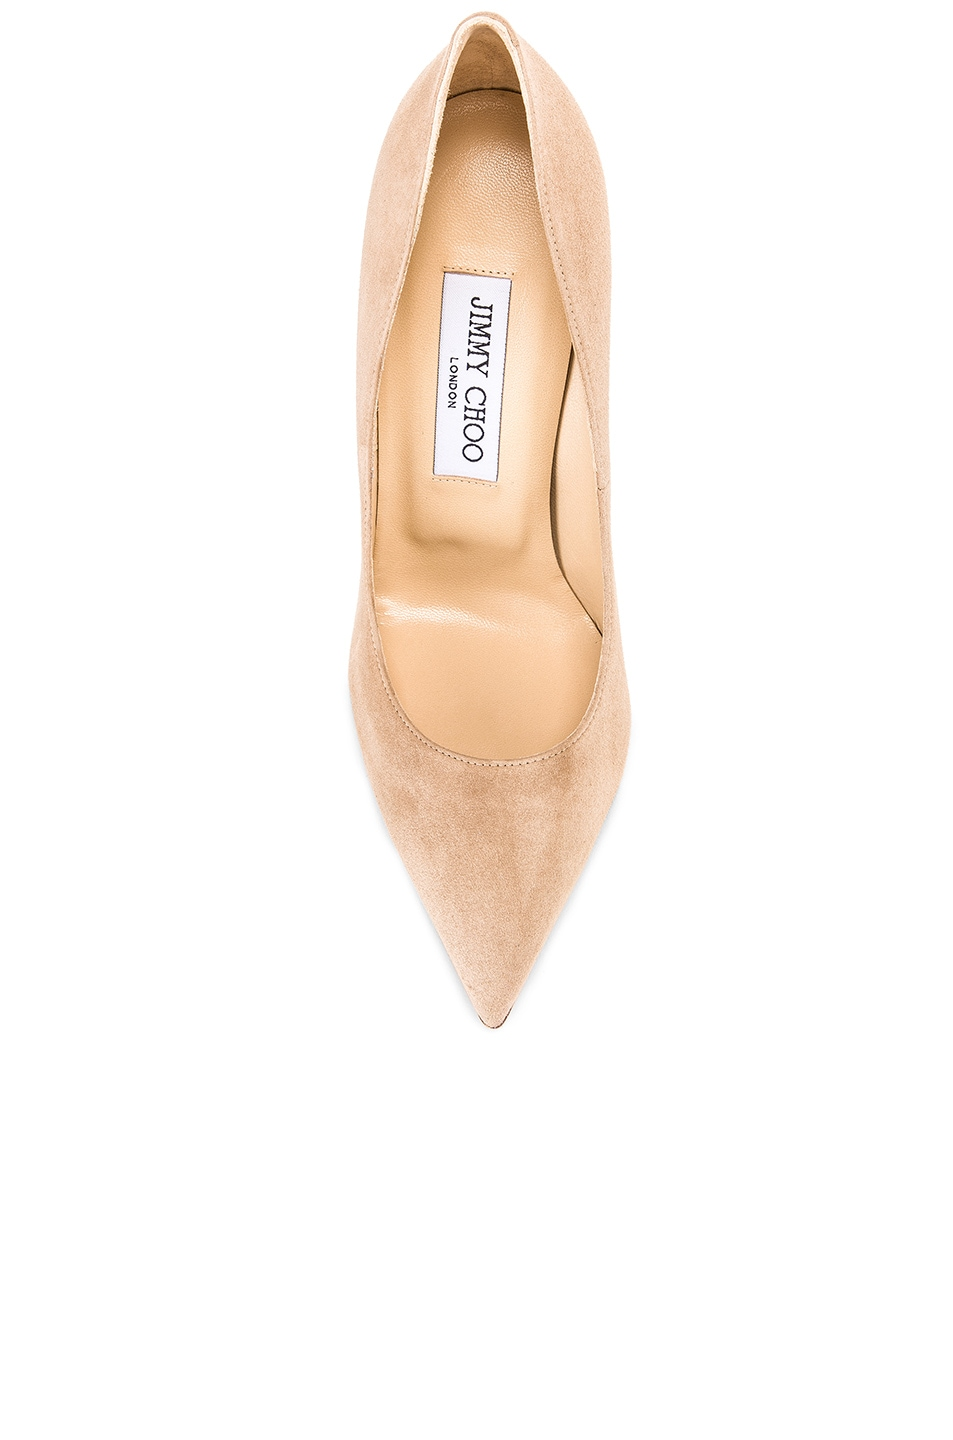 Jimmy Choo Anouk Suede Pumps in Nude | FWRD